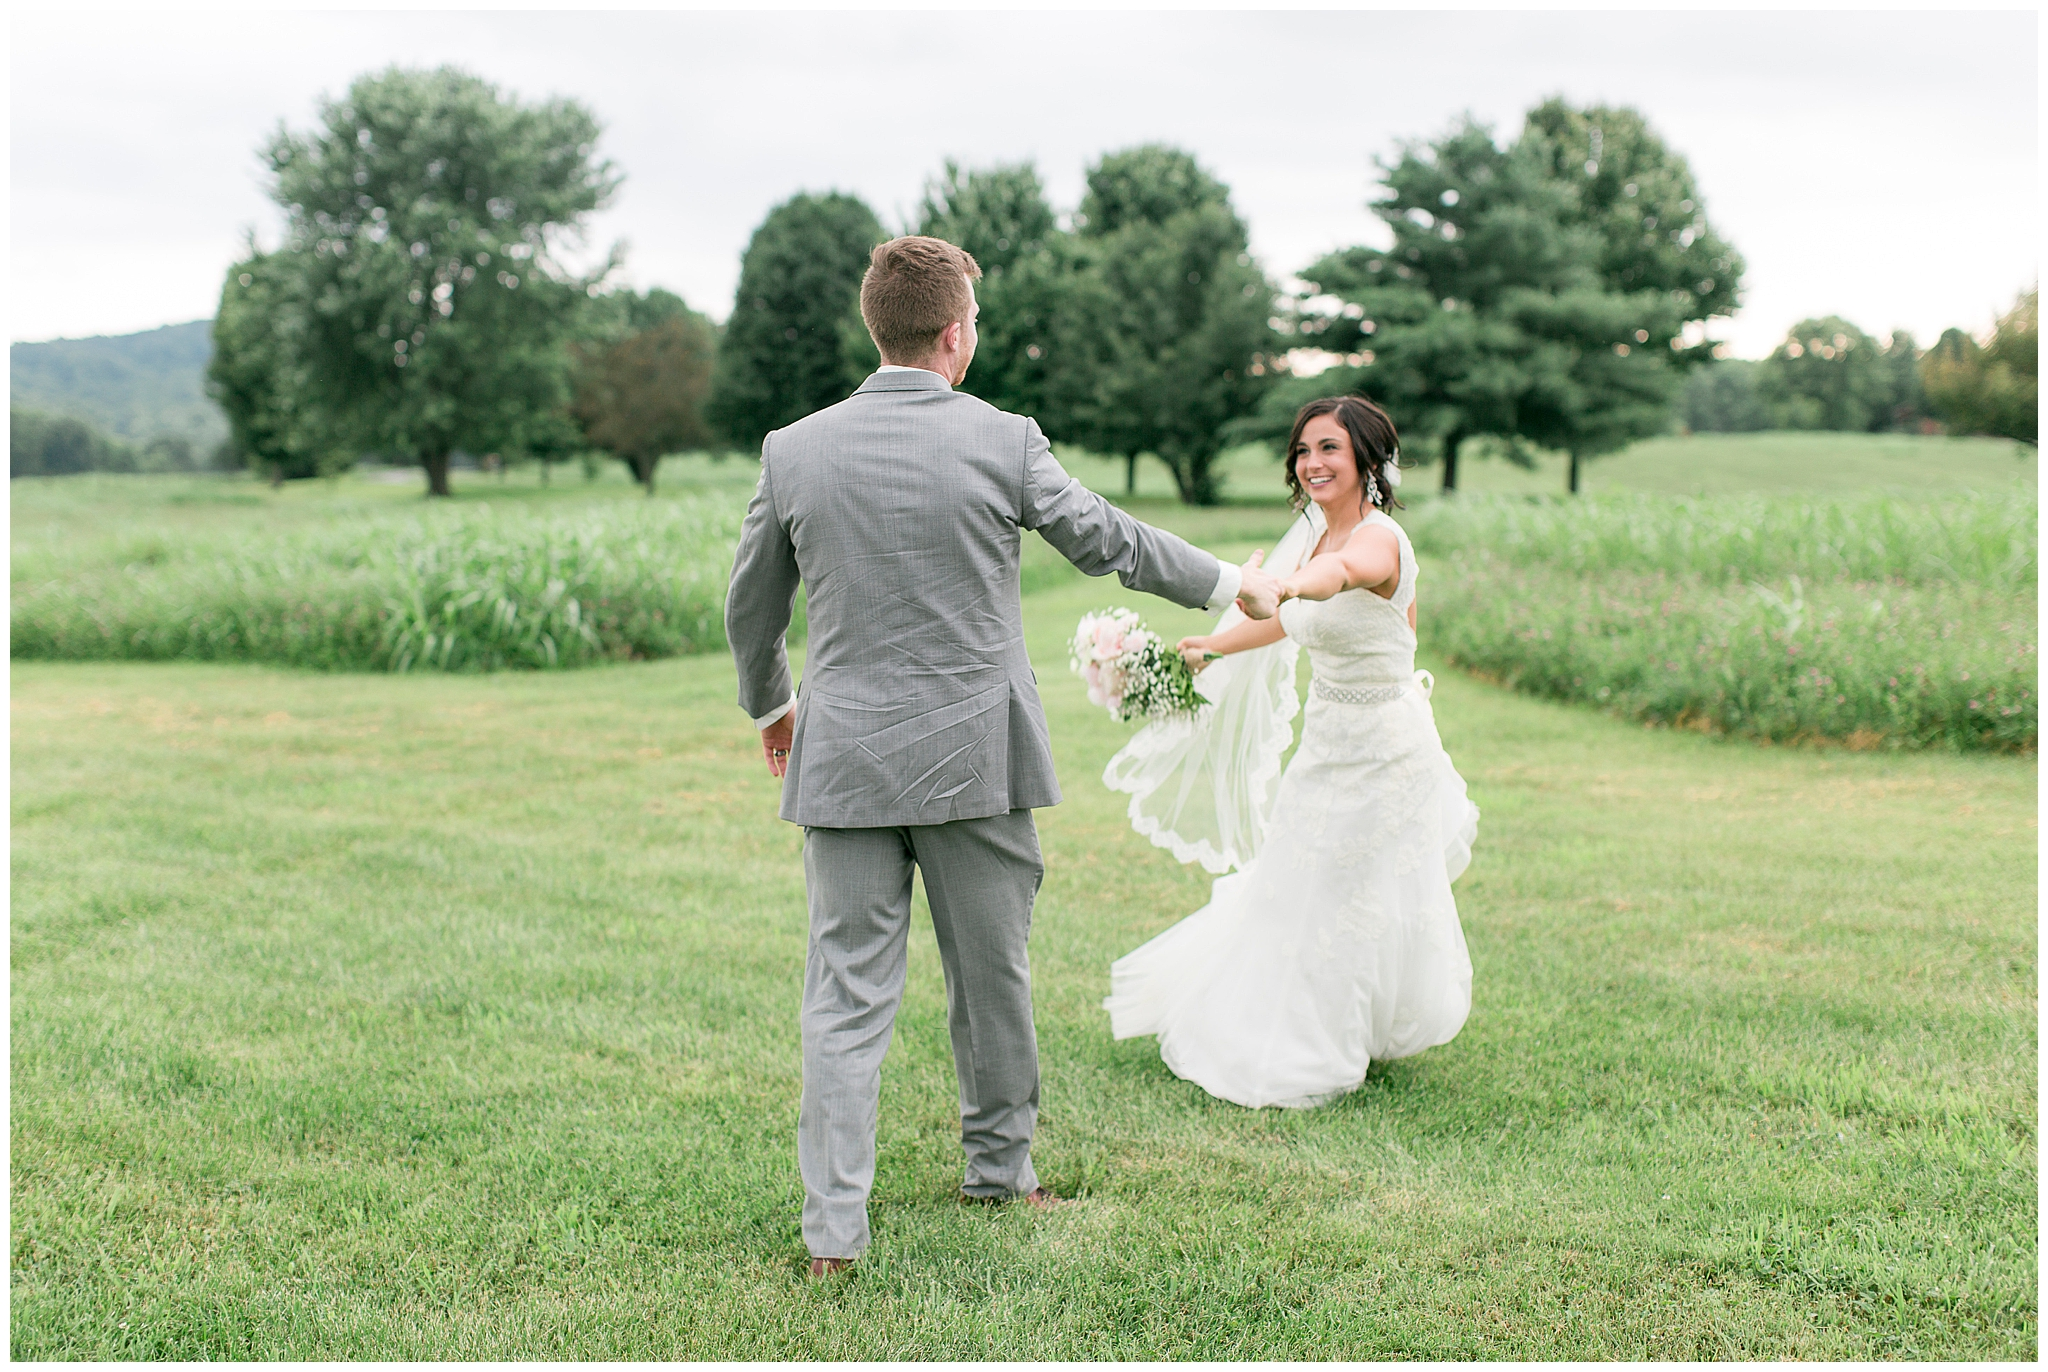 "Danville Kentucky was the dreamy backdrop for Mackenzie and Bradley's July ""I dos."" This couple had months to plan their perfect day, but the venue change the day before threw them for a loop! Nobody could have pulled in off as flawlessly as this perfect couple and their awesome bridal crew!     It's all in the details with this unique barn wedding. The ceremony arch was wrapped with white silk, eucalyptus, and beautiful flowers waiting for the even more stunning bride. Mackenzie wore a lace dress with a sweetheart neckline from David's Bridal and had a custom-made veil pinned in her curls. The bridesmaids (yes, there were a lot!) wore shades of green to compliment the grey suits worn by the groomsmen.     Bradley's reaction to Mackenzie walking down the aisle was so precious; all the family members were tearing up! The night was spent capturing every single sweet moment between the two of them. They made sure to include tons of time for dancing so the floor was filled with laughing and fun until the final send off. As everyone blew bubbles in the happy couples way, they drove off and started their lives together."